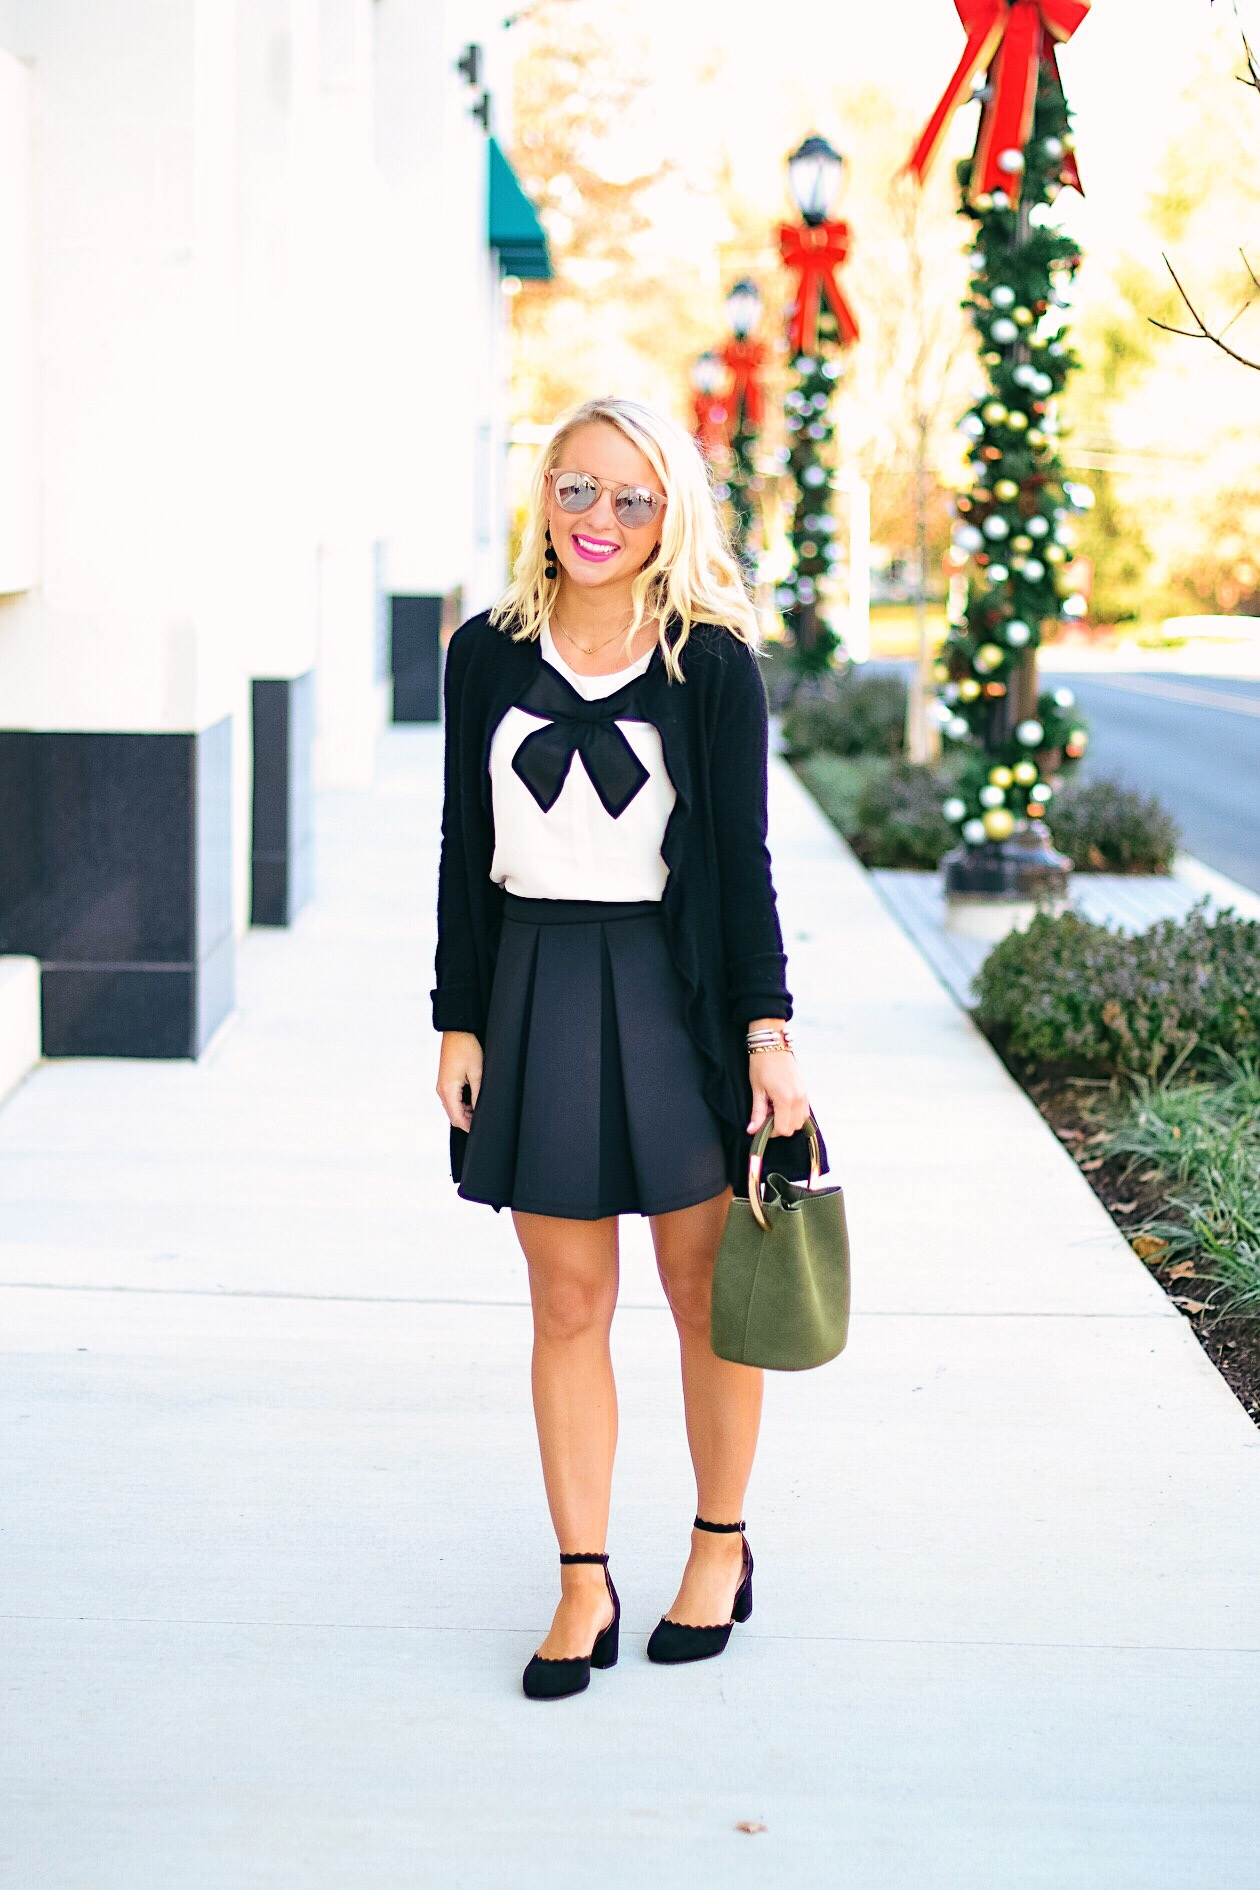 Bow top and black scalloped shoes